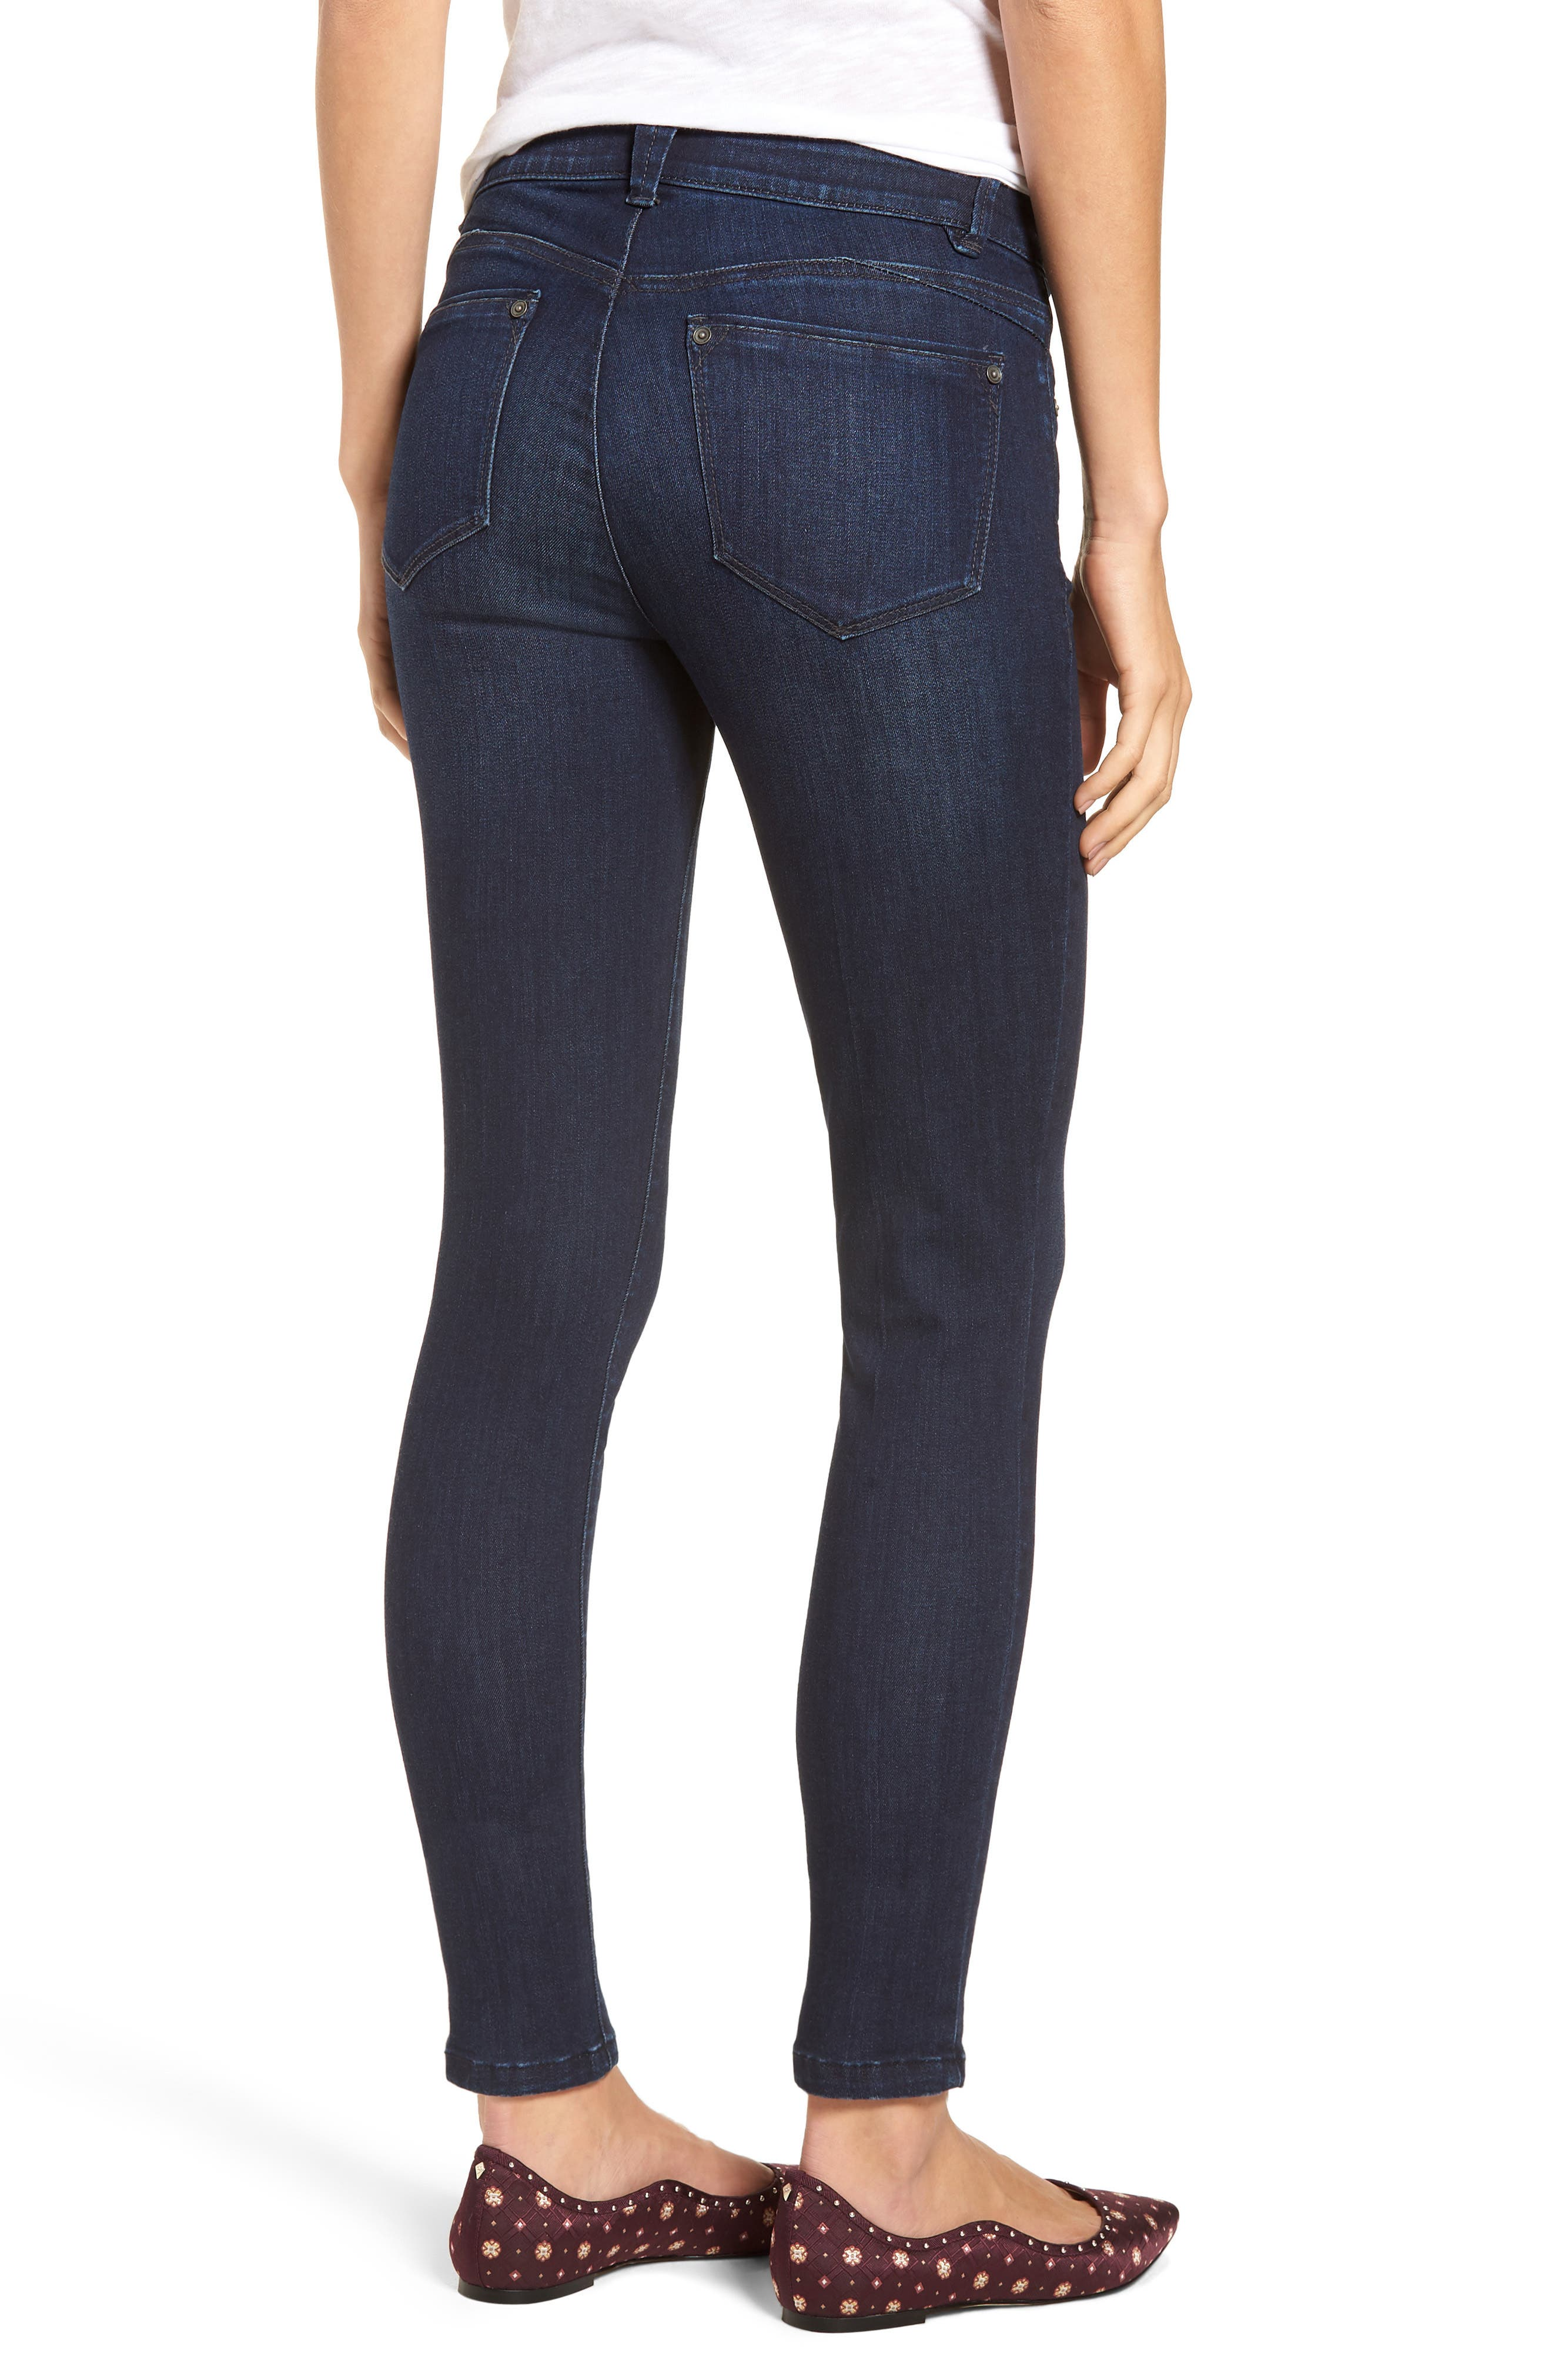 Ab-solution Skinny Jeans,                             Alternate thumbnail 2, color,                             402